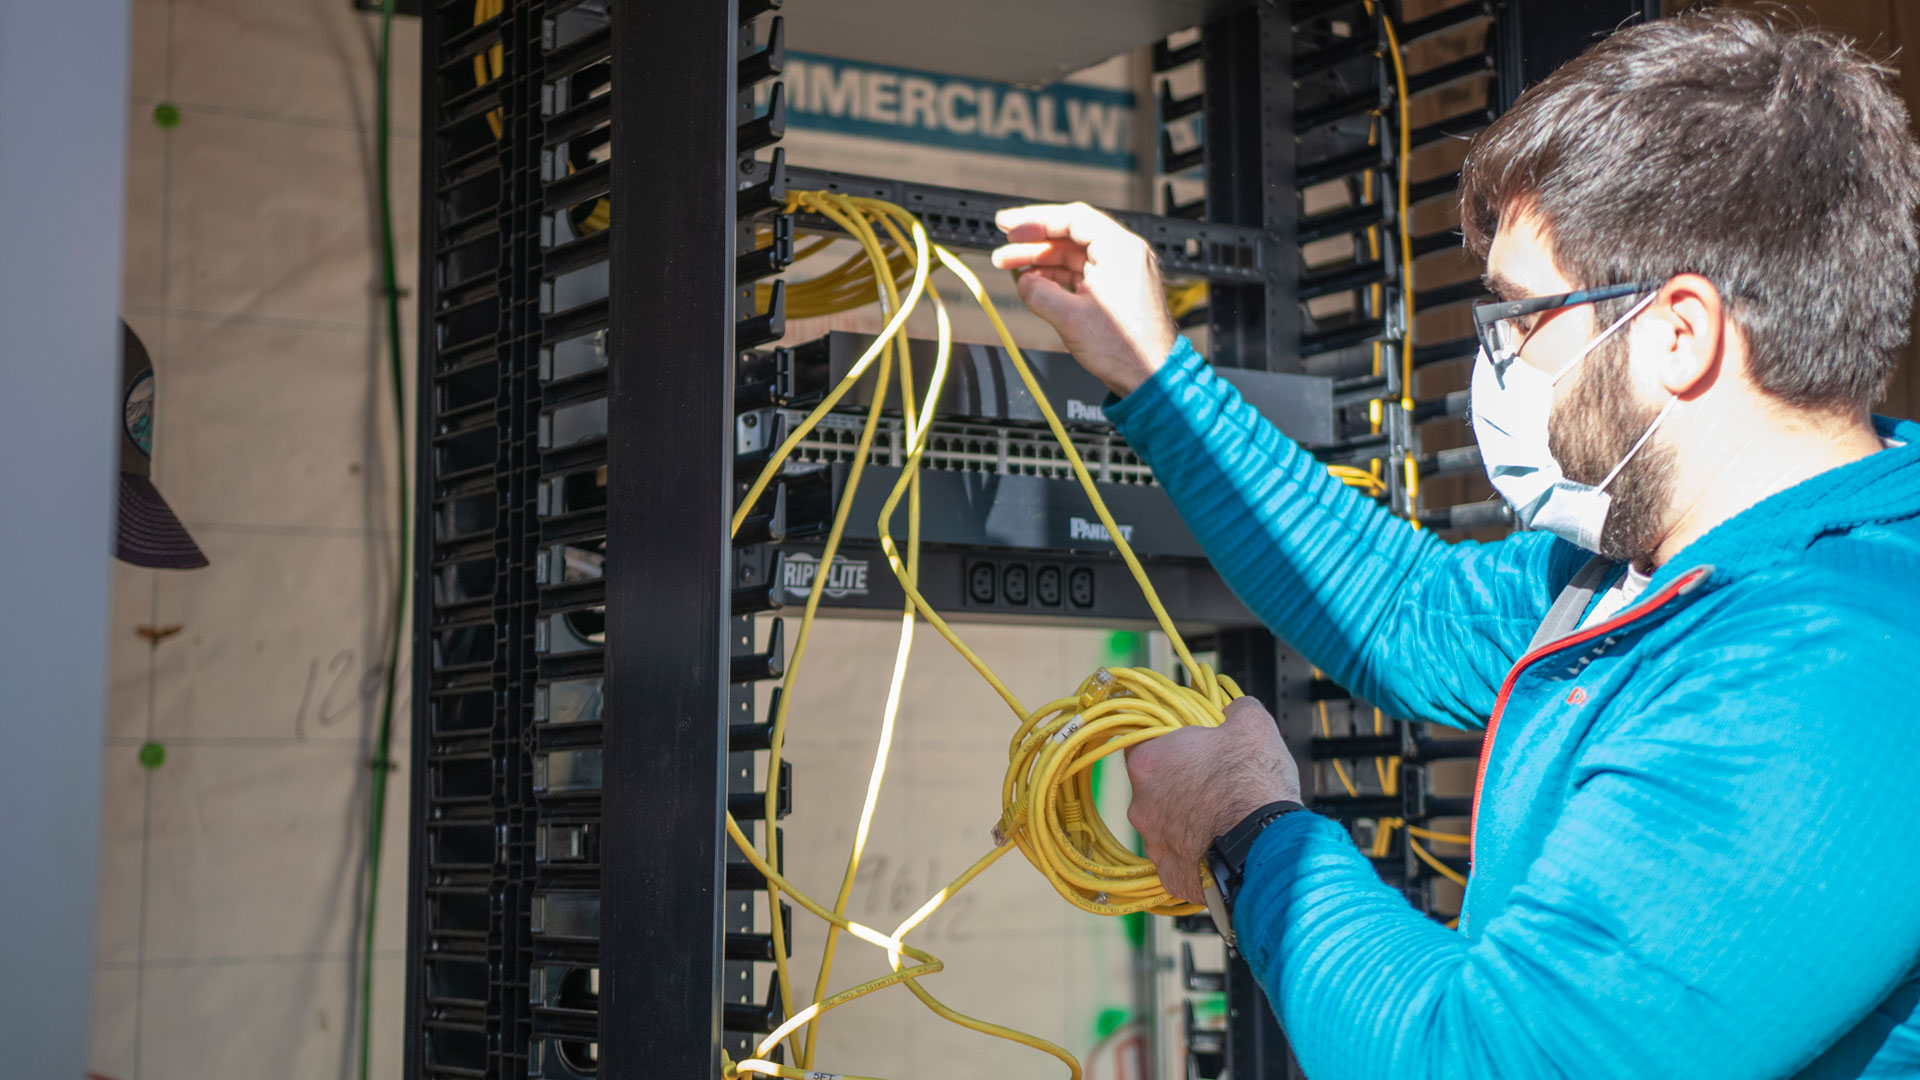 Network engineer Jeff Courtney working to install cable in a network closet